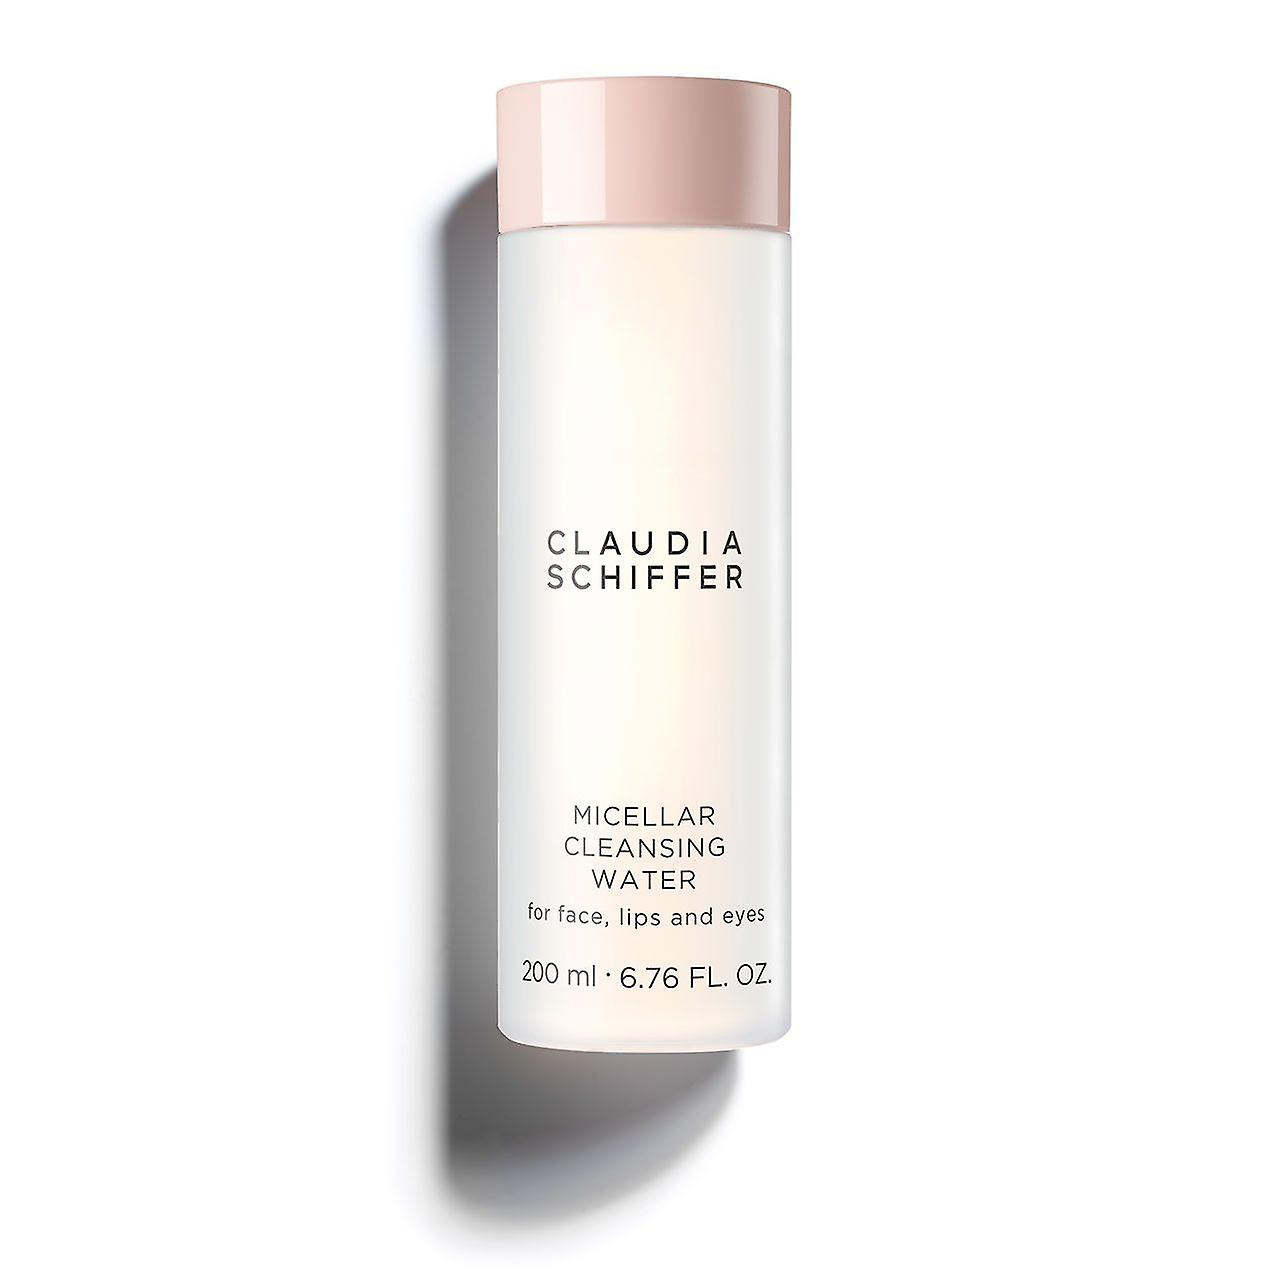 Micellar Cleansing Water For Face, Lips and Eyes